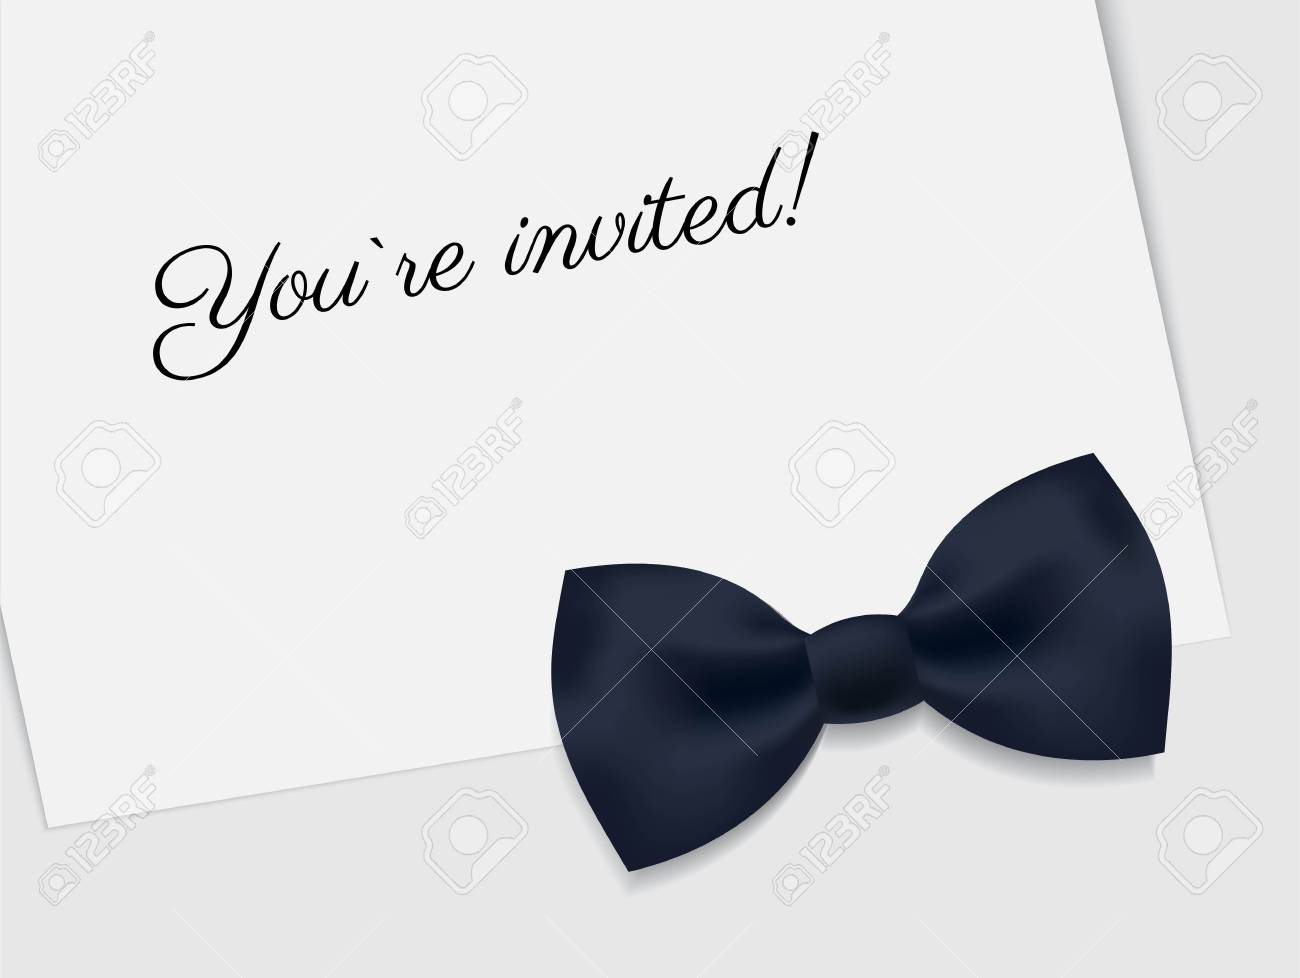 vip premium horizontal invitation card black tie event invitation